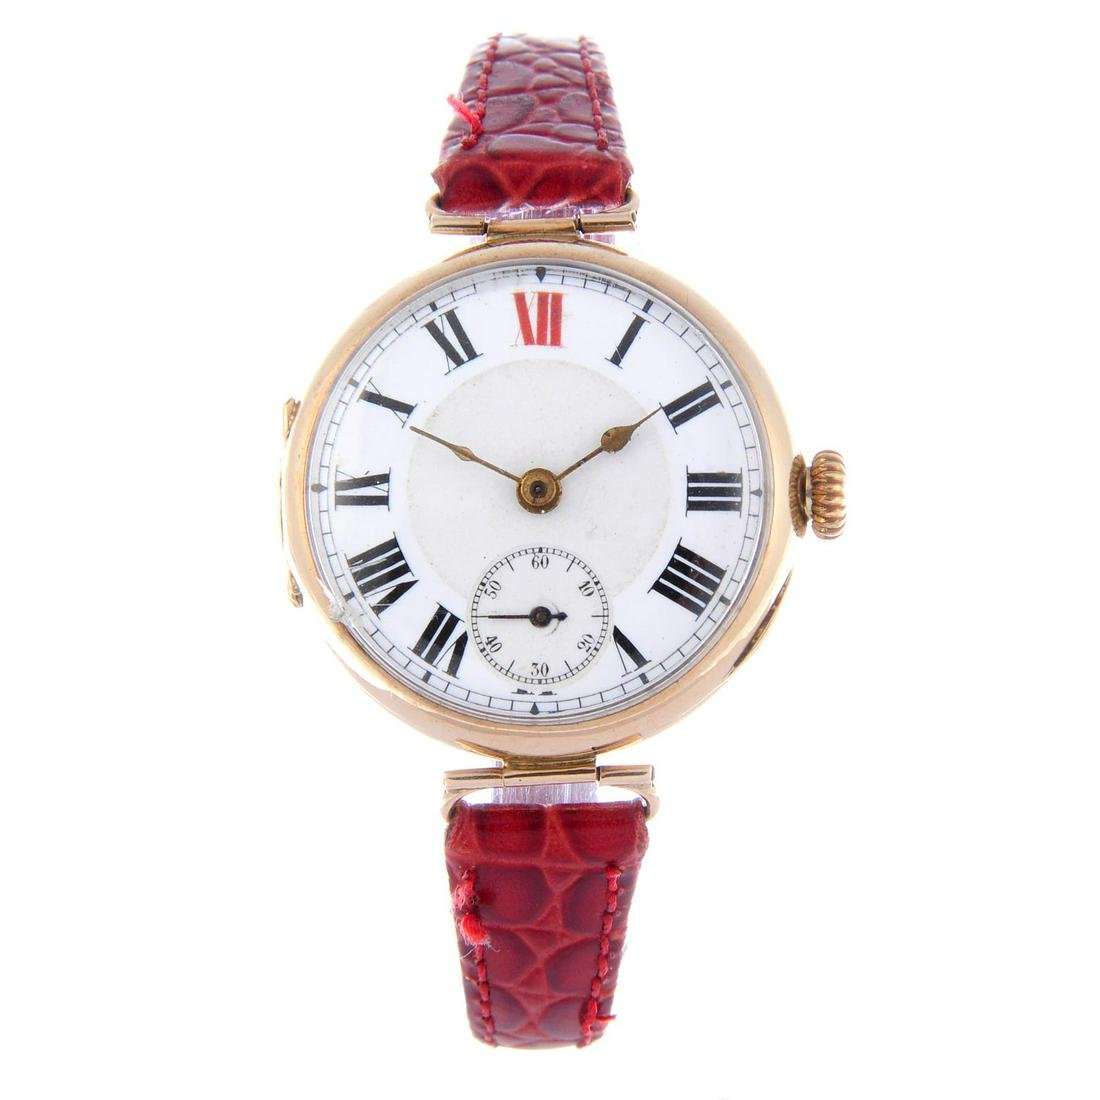 A trench style wrist watch. 9ct yellow gold case with